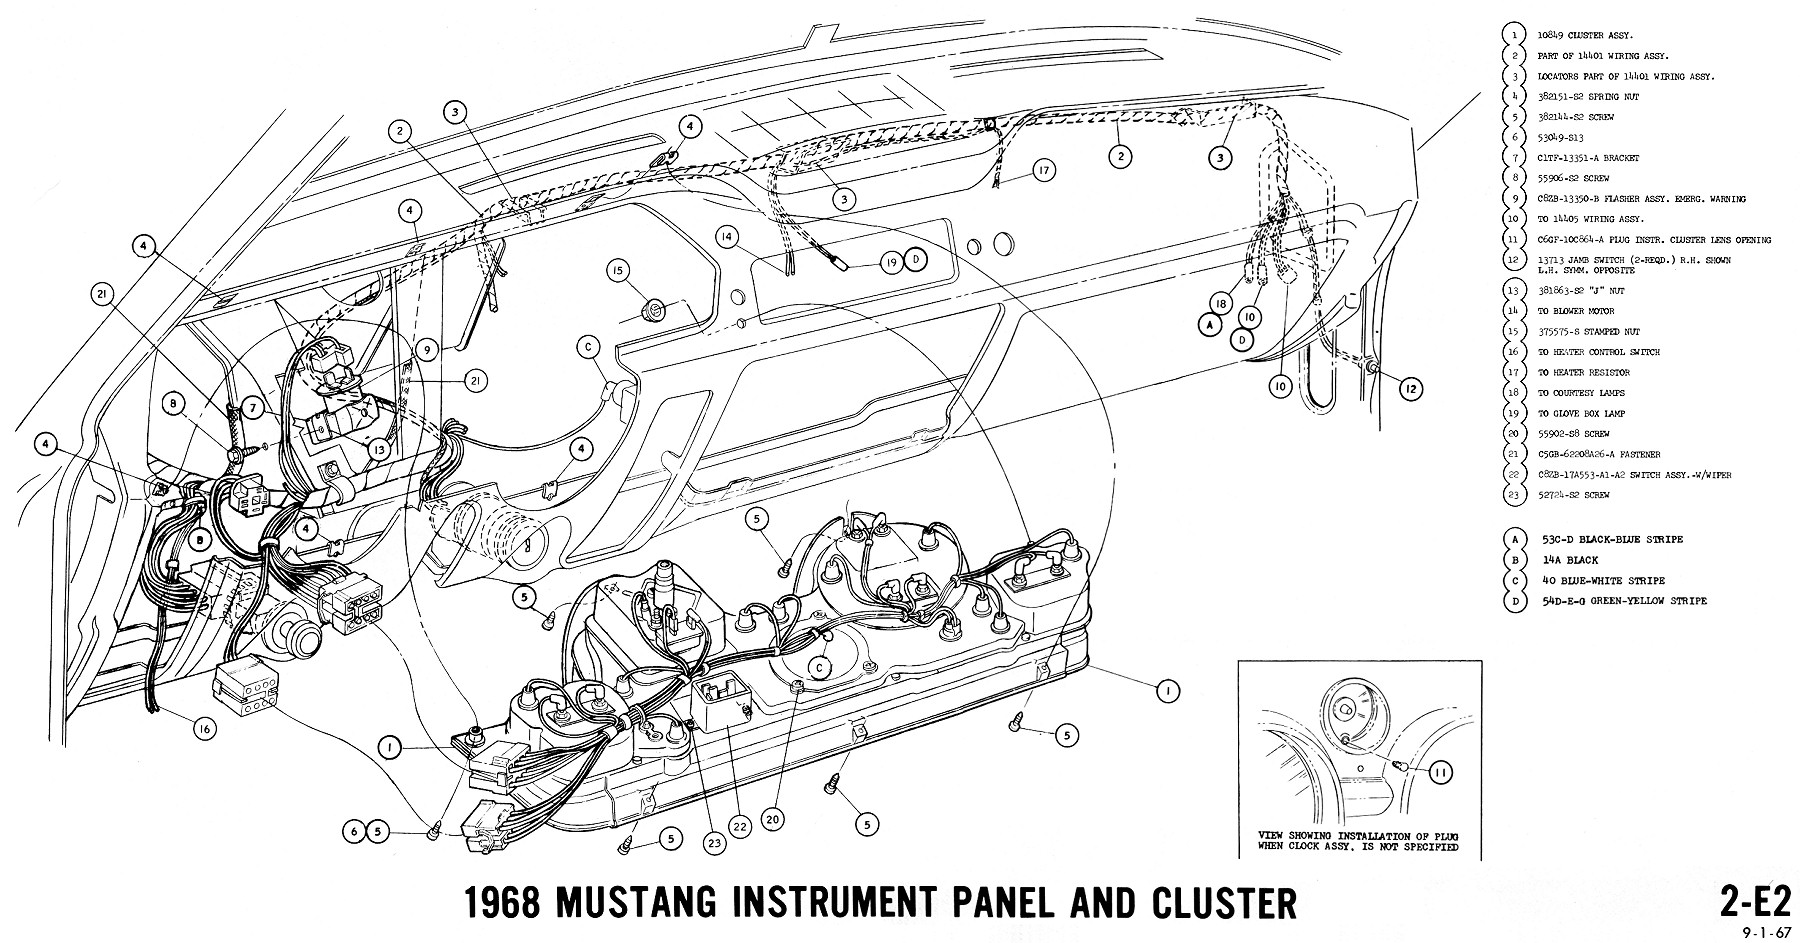 1968 mustang wiring diagram instruments 2 wiring diagram 1966 mustang the wiring diagram readingrat net mustang ii wiring diagram at eliteediting.co